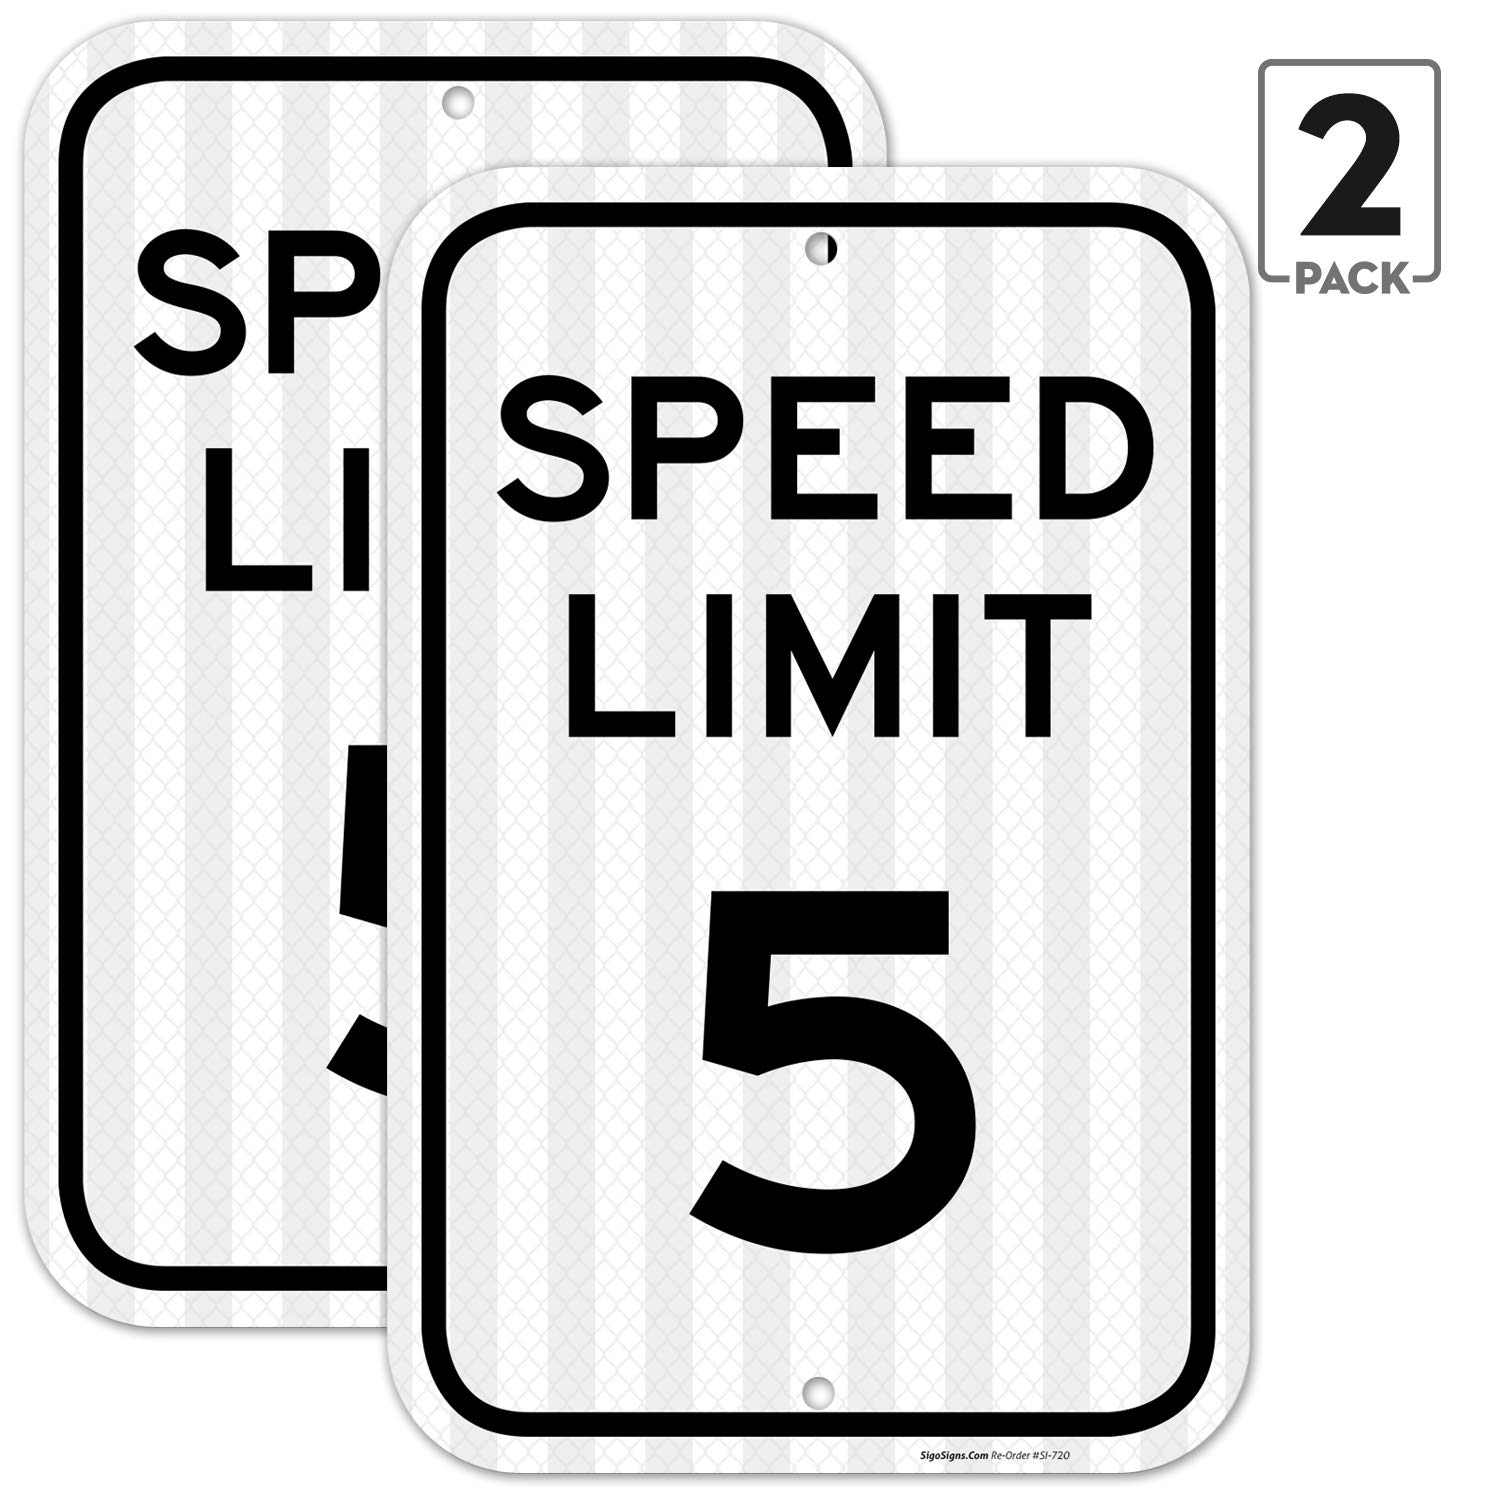 (2 Pack) Speed Limit 5 MPH Sign, 12x18 3M Reflective (EGP) Rust Free .63 Aluminum, Easy to Mount Weather Resistant Long Lasting Ink, Made in USA by SIGO Sign